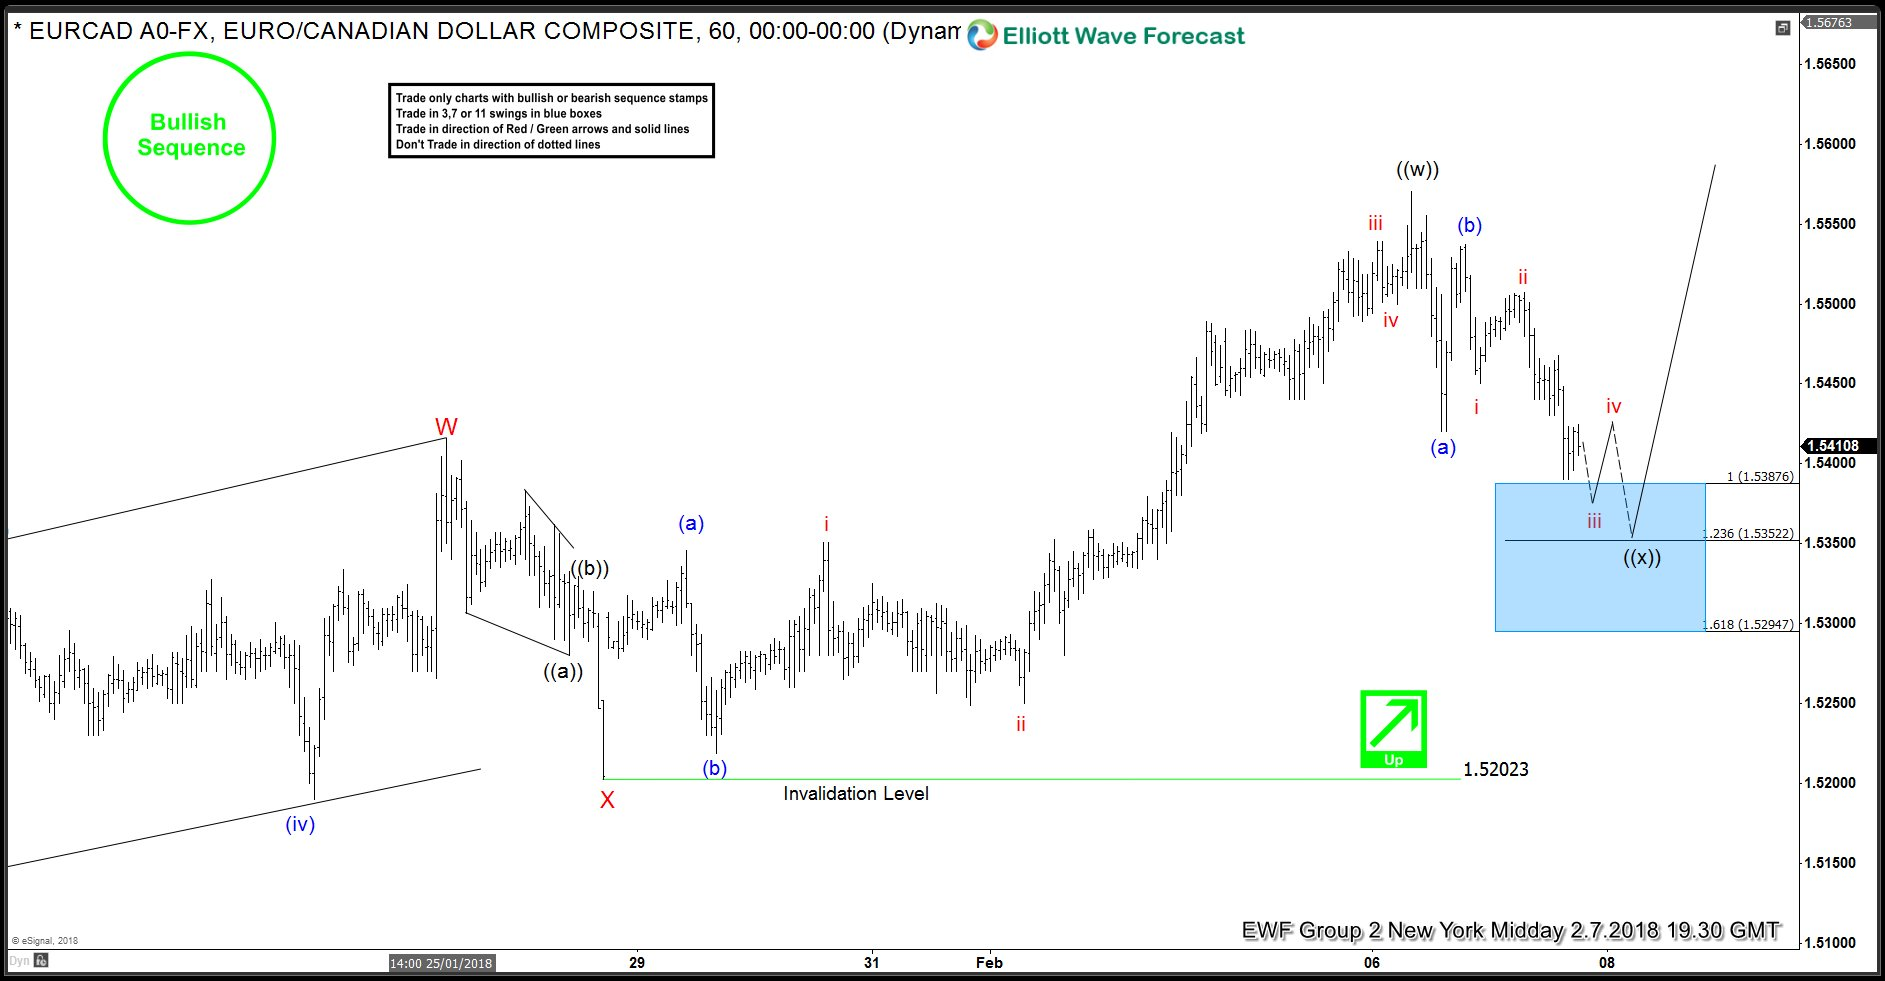 EURCAD Elliott Wave